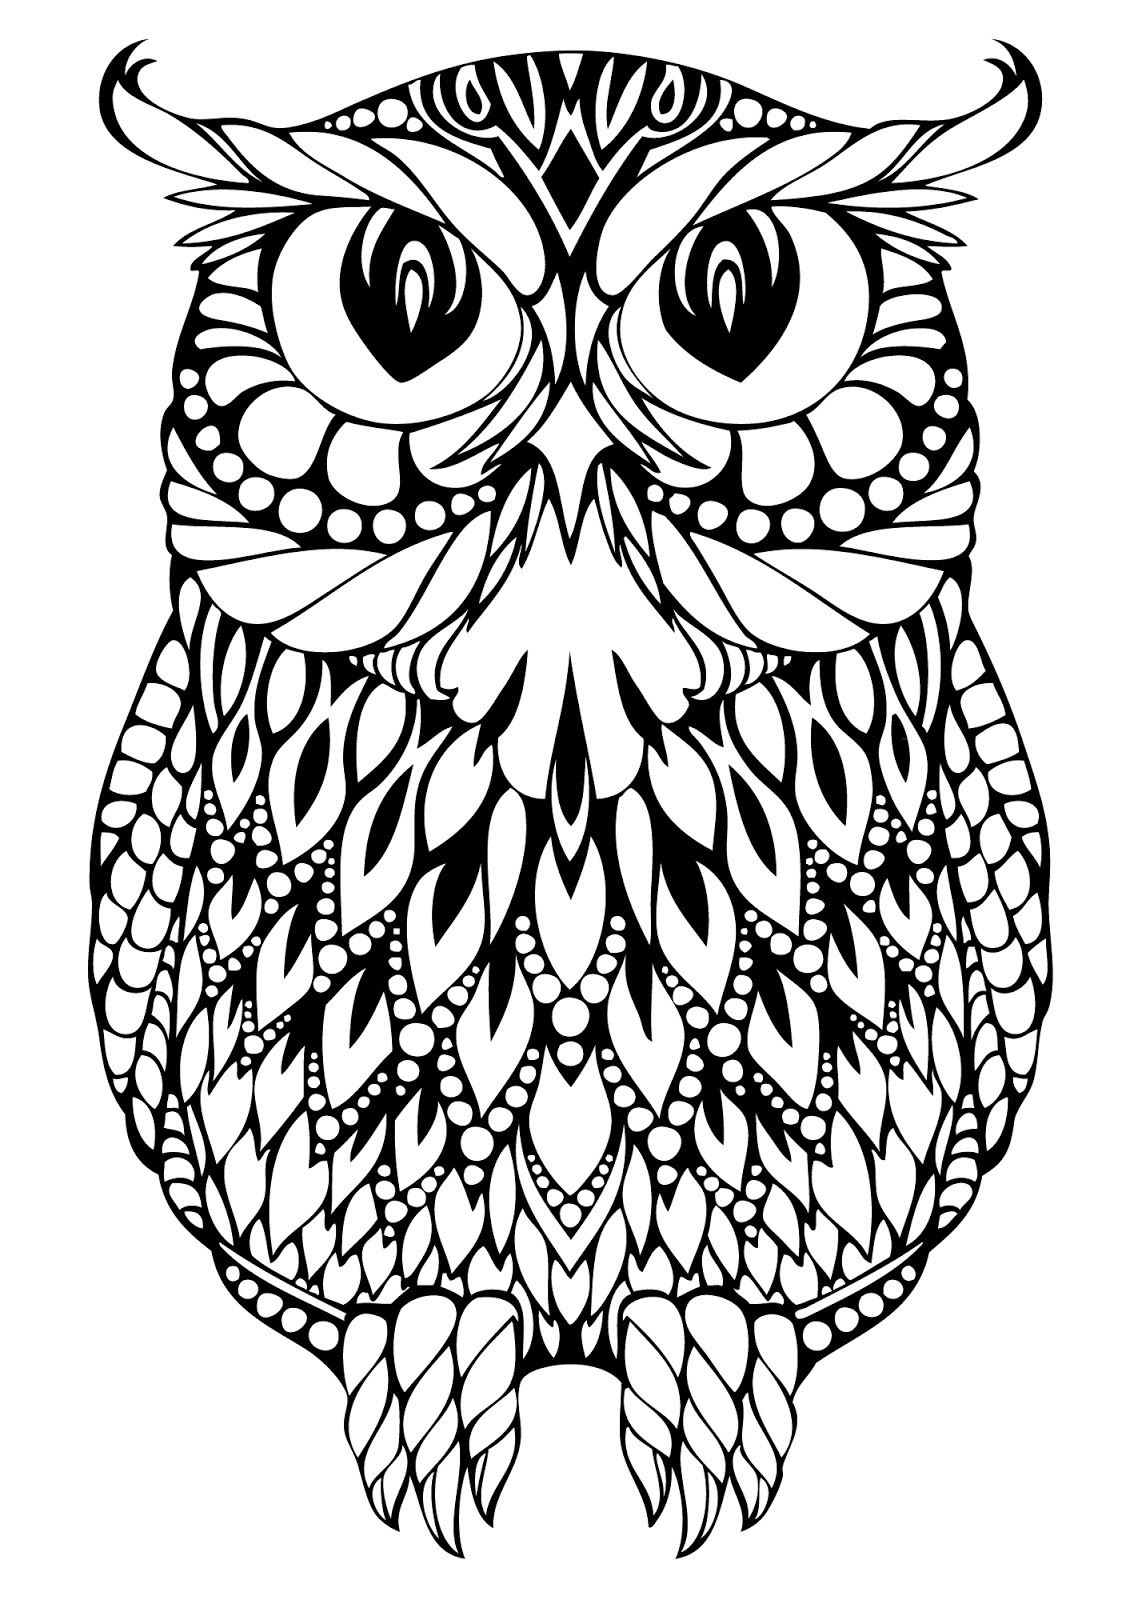 coloring pictures for adults hard coloring pages for adults best coloring pages for kids for coloring adults pictures